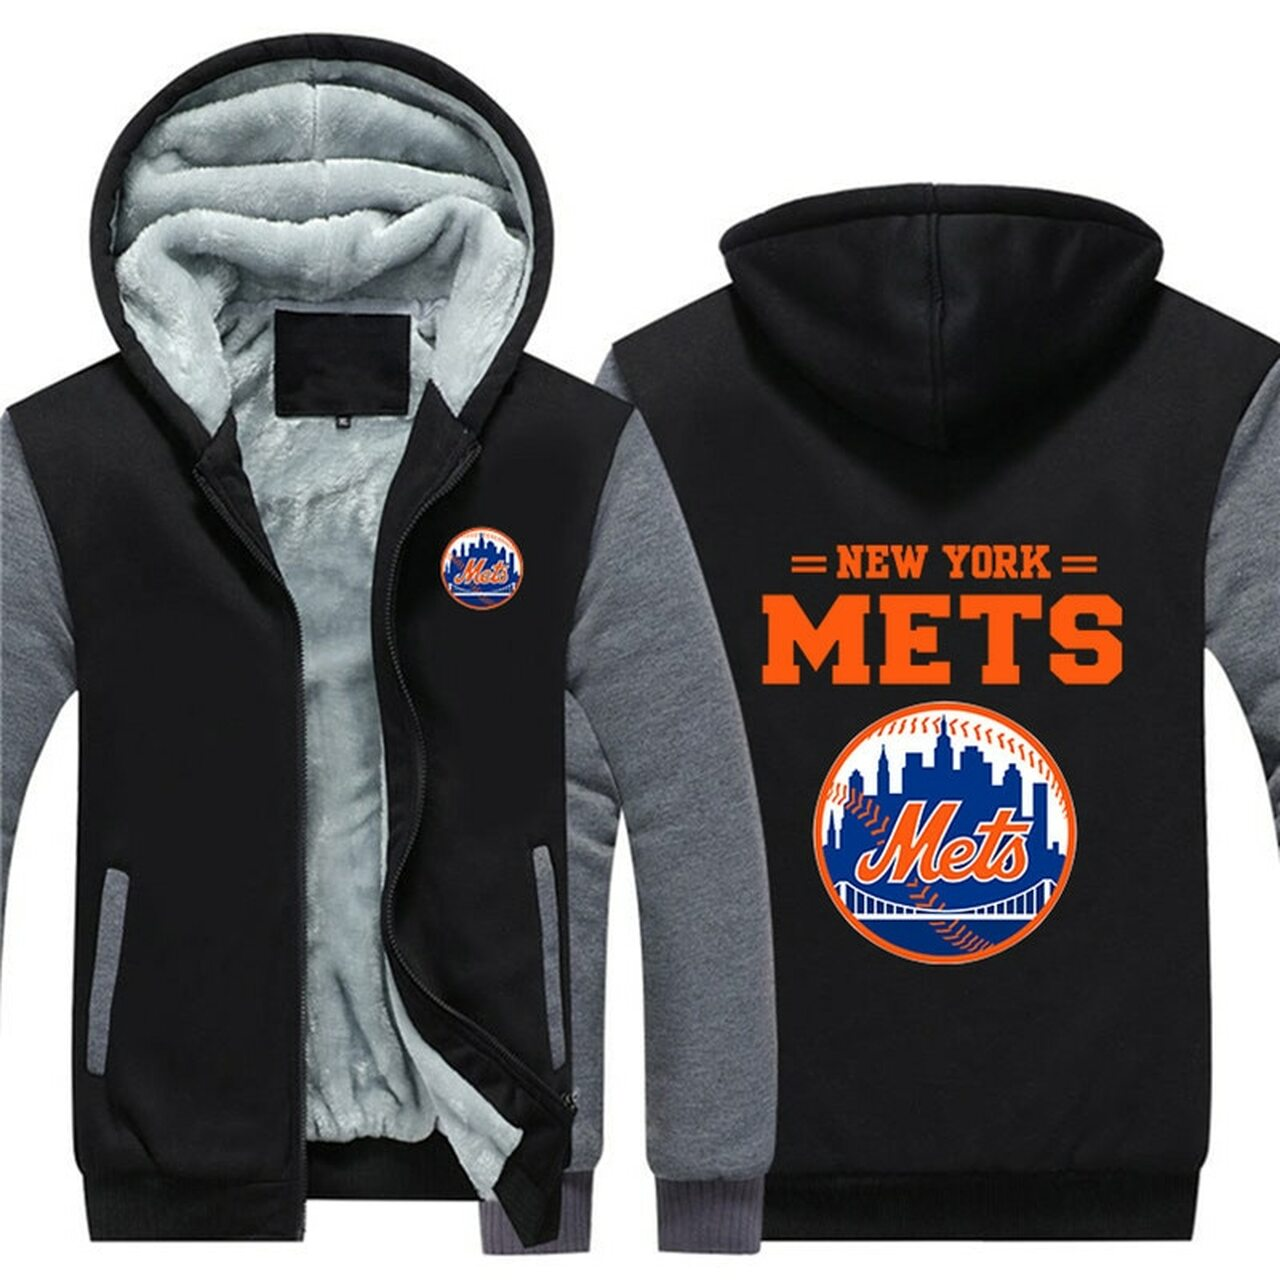 differently d0802 18887 **(OFFICIAL-NEW-YORK-METS-FRONT-ZIPPERED-PREMIUM-HOODIES/WARM-THICK-FLEECE-INNER-LINED-IN-TRENDY-BLUE  & ...